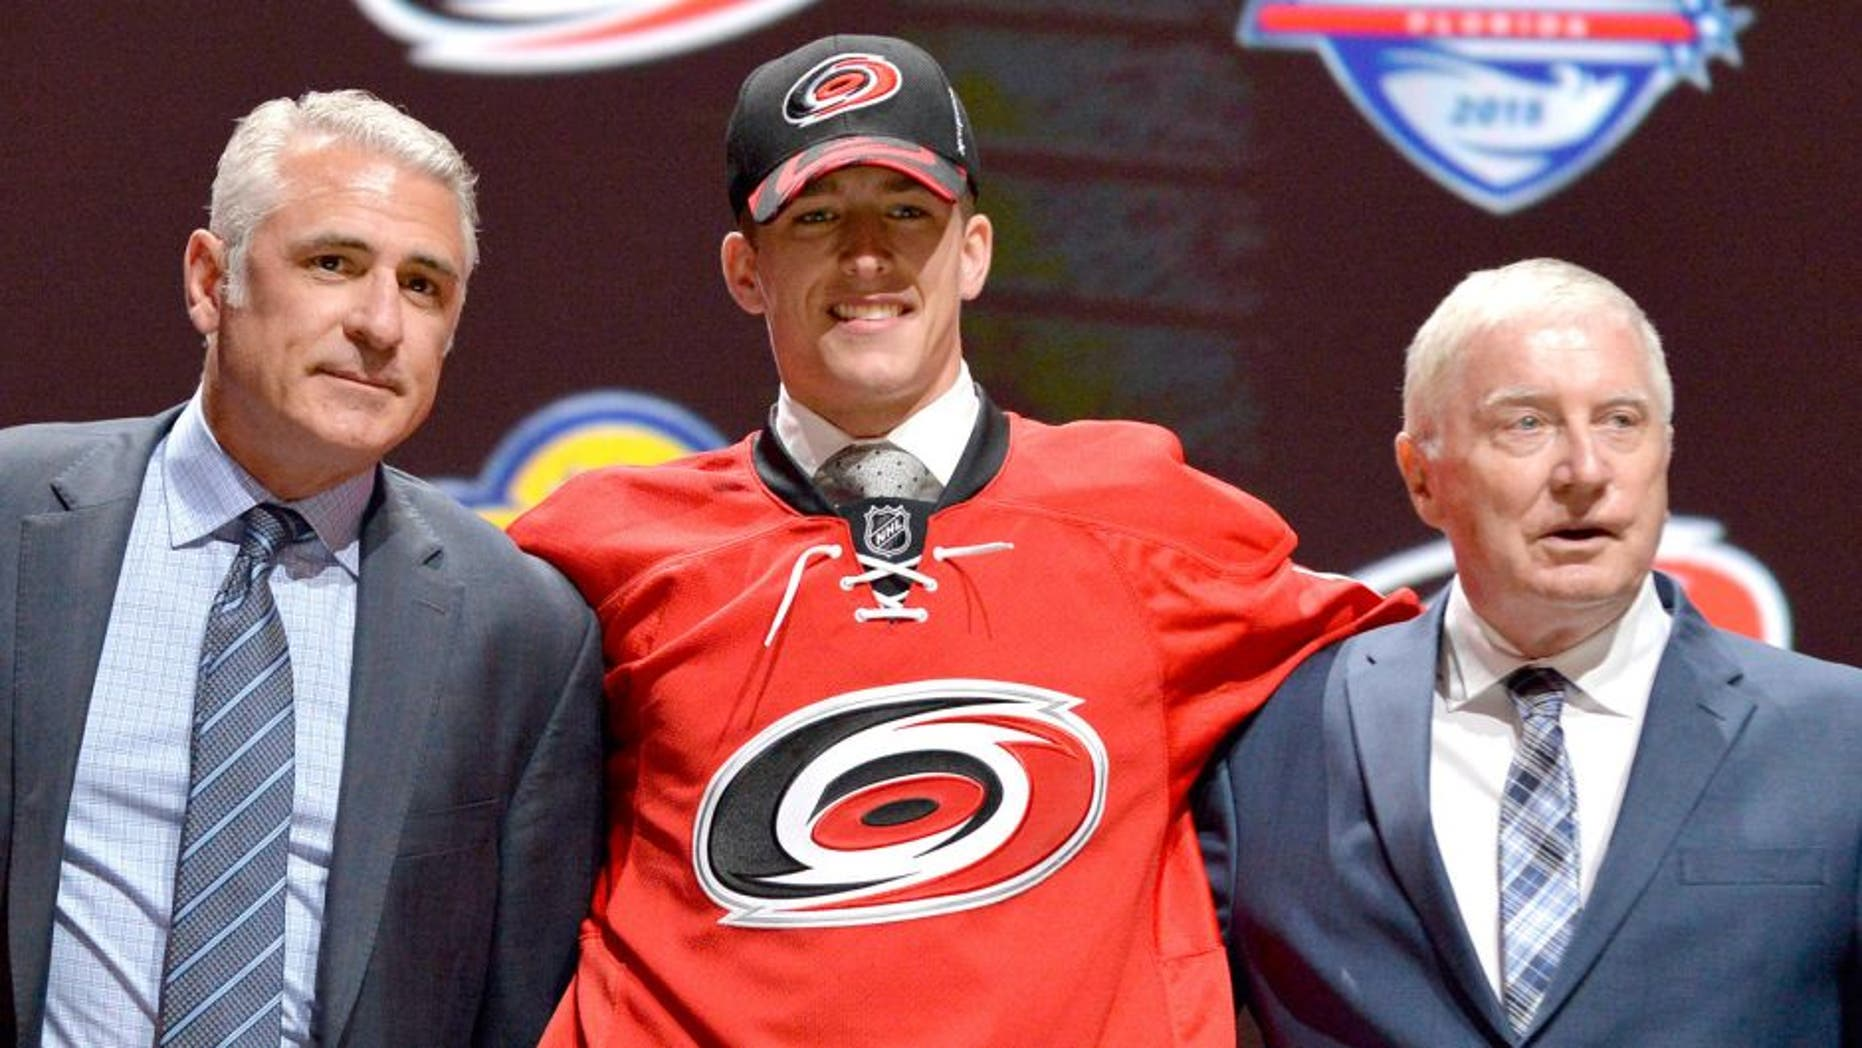 Jun 26, 2015; Sunrise, FL, USA; Noah Hanifin poses with team executives after being selected as the number five overall pick to the Carolina Hurricanes in the first round of the 2015 NHL Draft at BB&T Center. Mandatory Credit: Steve Mitchell-USA TODAY Sports